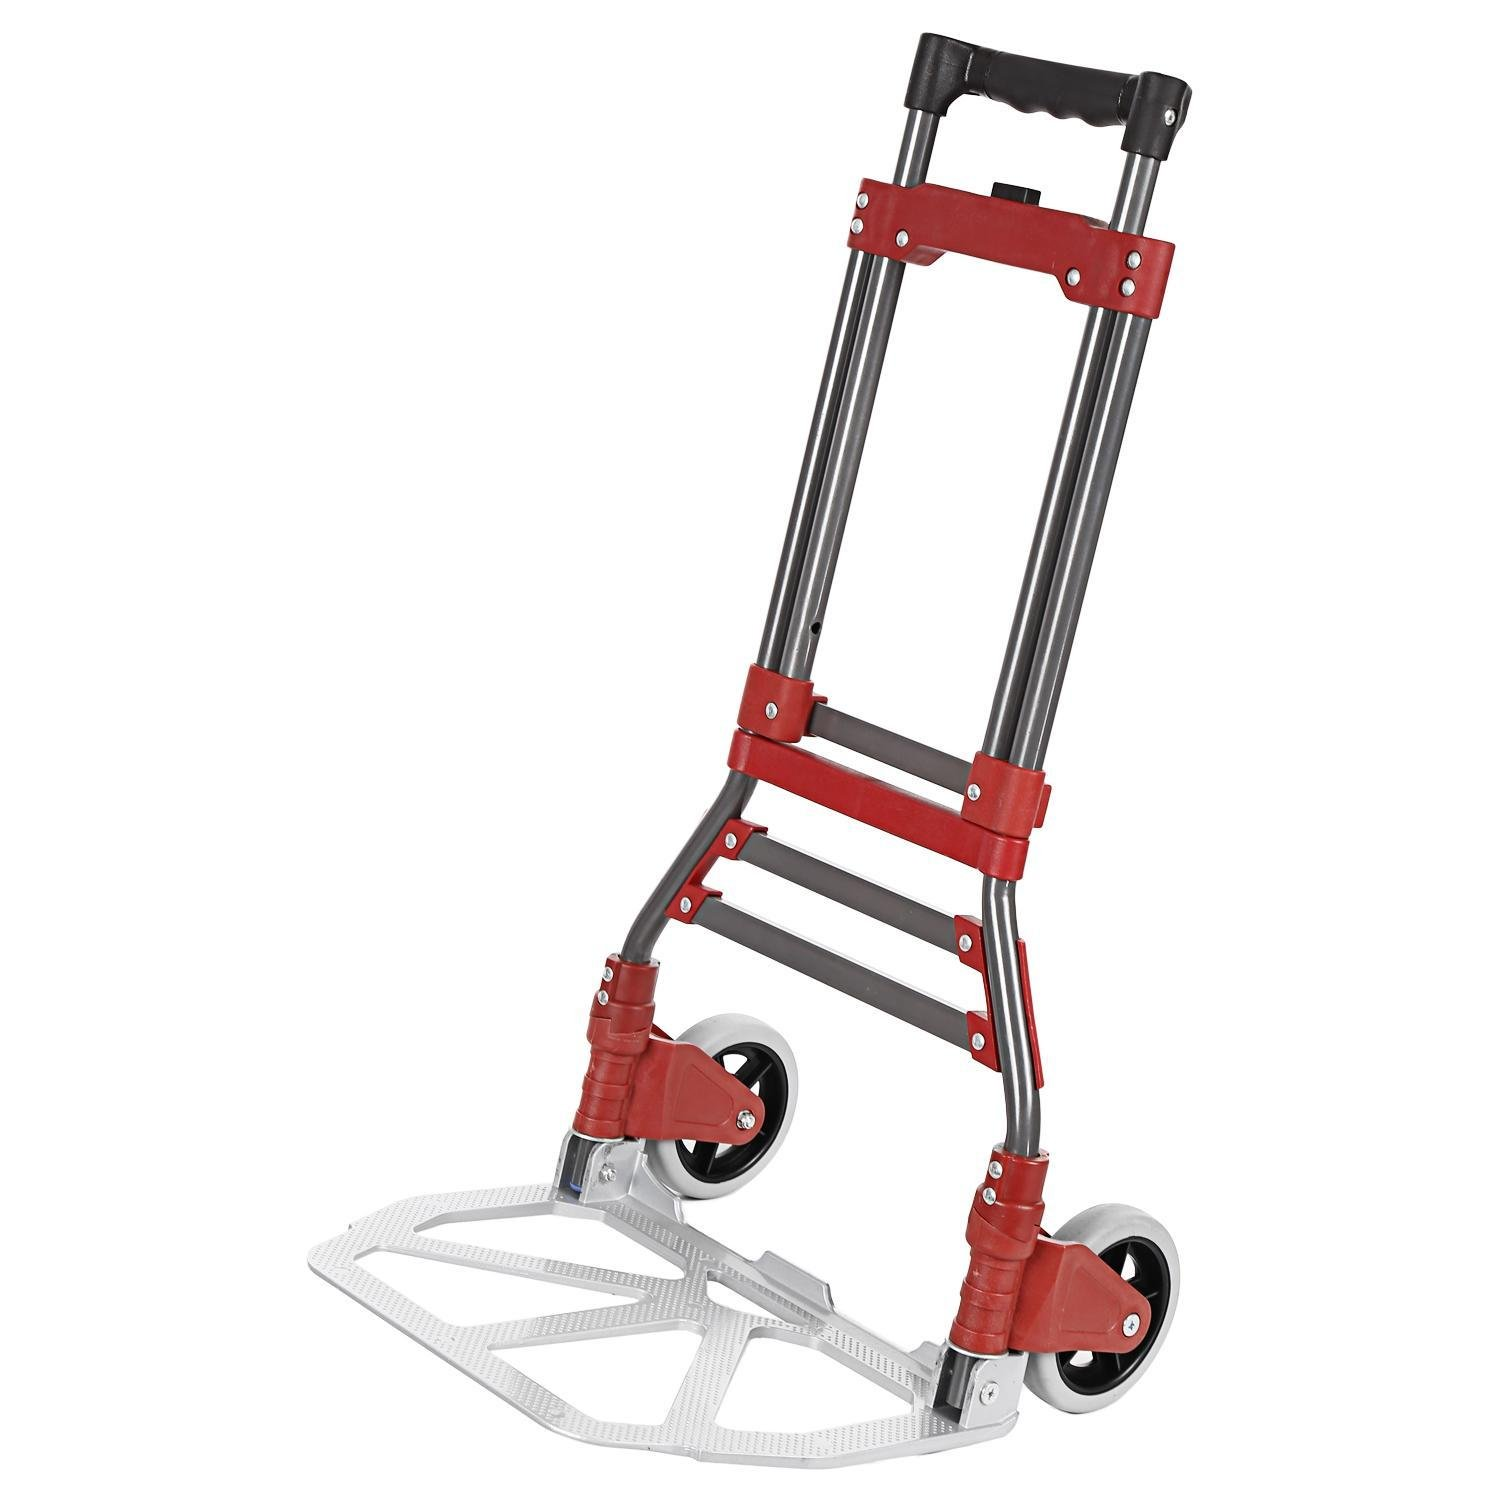 Ferty Aluminum Folding Two Wheel Hand Truck Cart Dollies Bearing 165 lbs with Rope